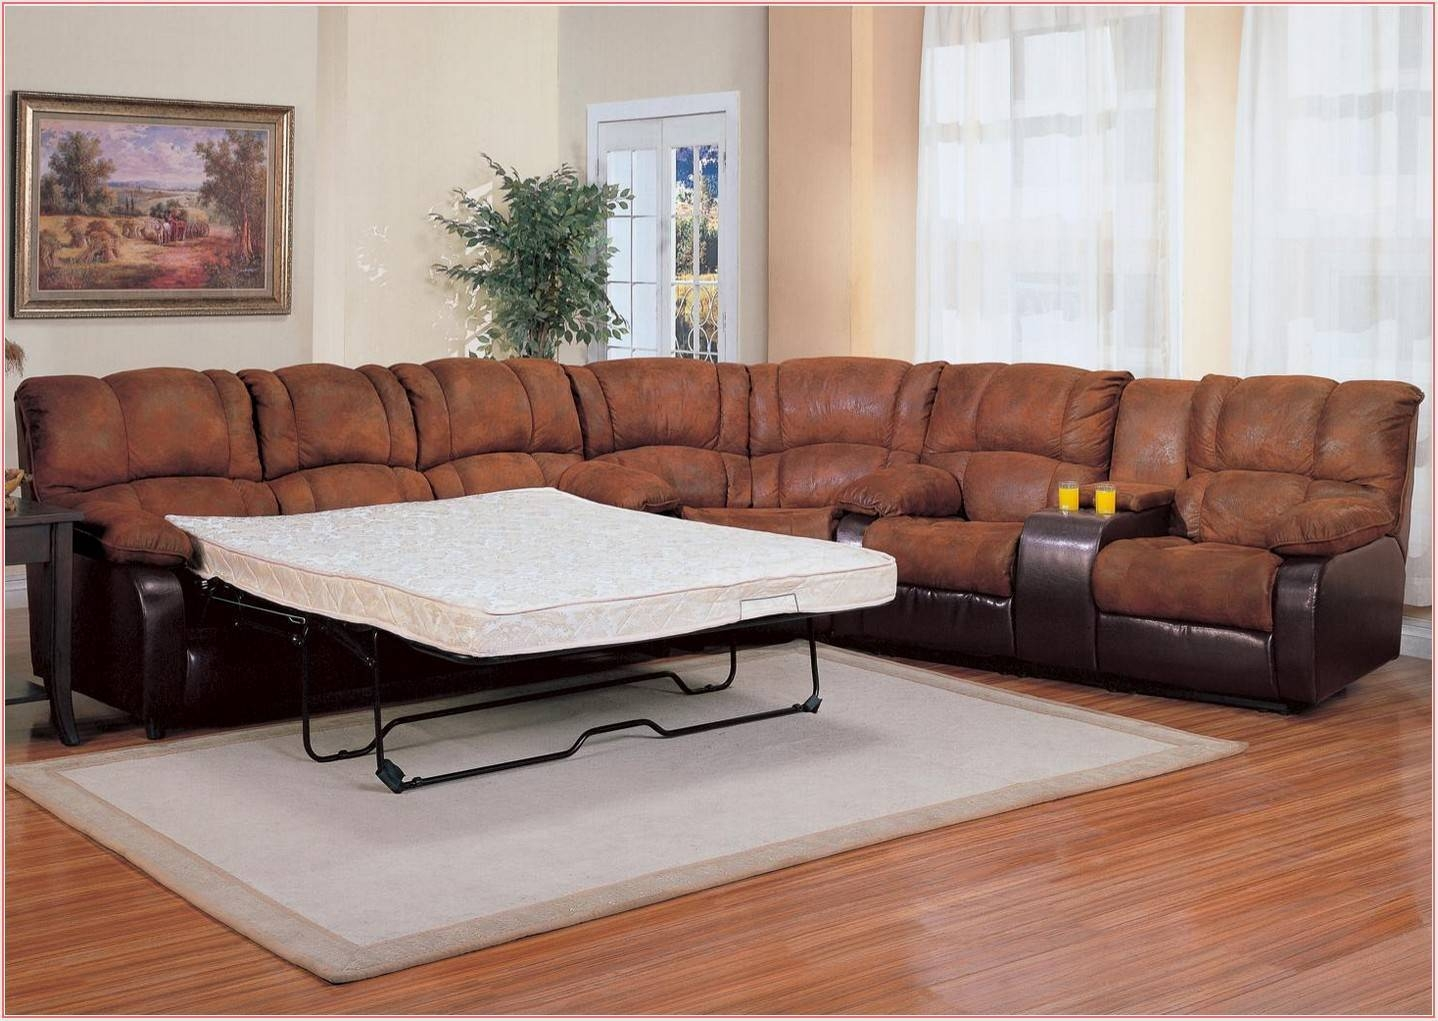 Astonishing C Shaped Sofa Sectional 43 For Your Black And Red for C Shaped Sofas (Image 4 of 30)